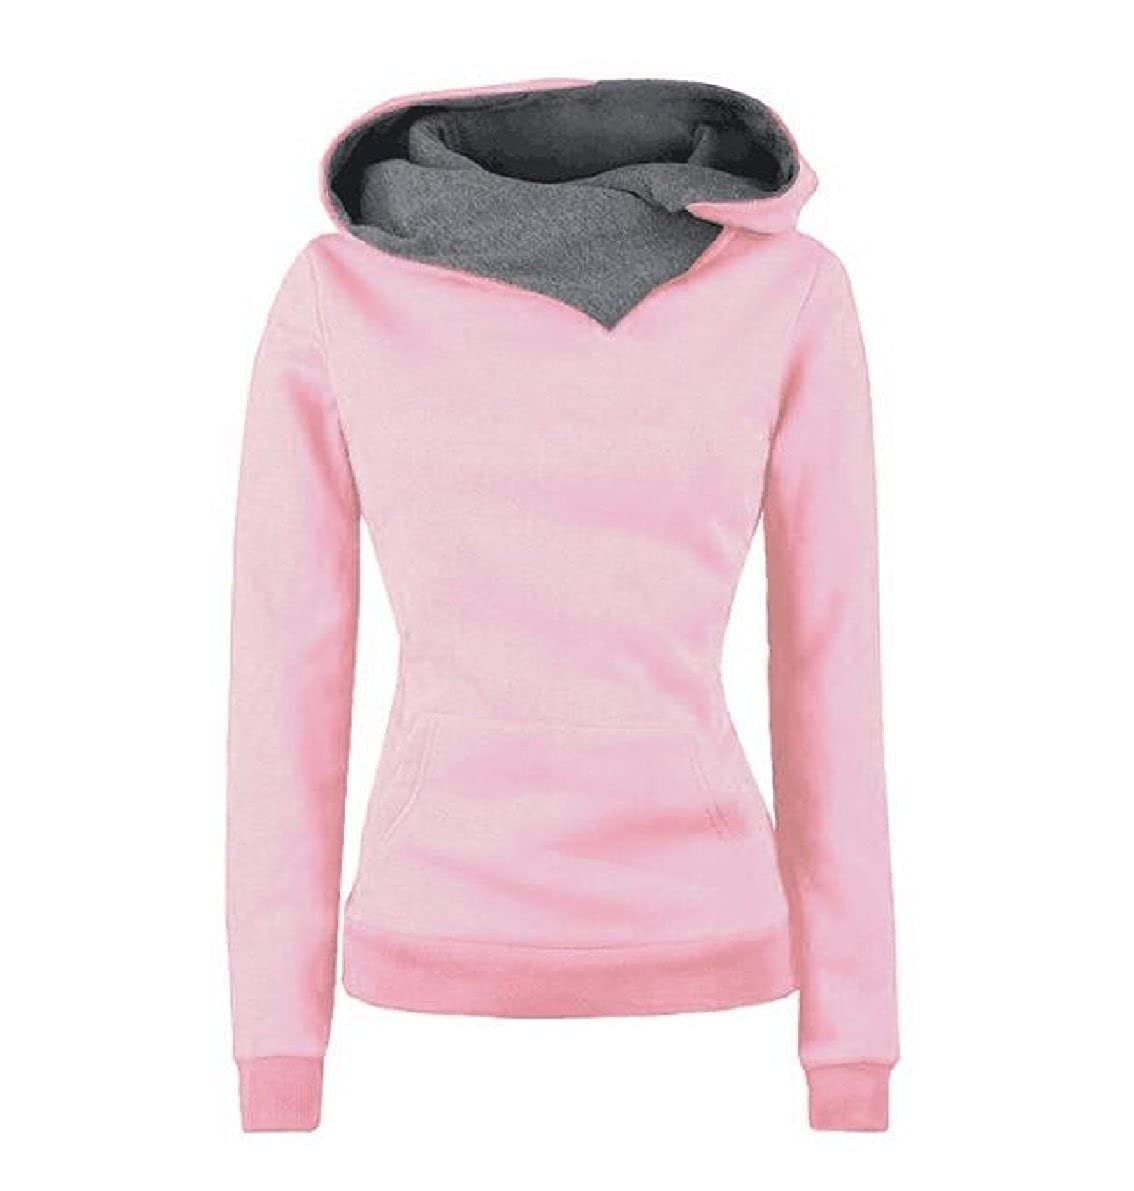 Kankanluck Women Pullover Hit Color Slim Simple Tunic Hoodie Sweatshirt